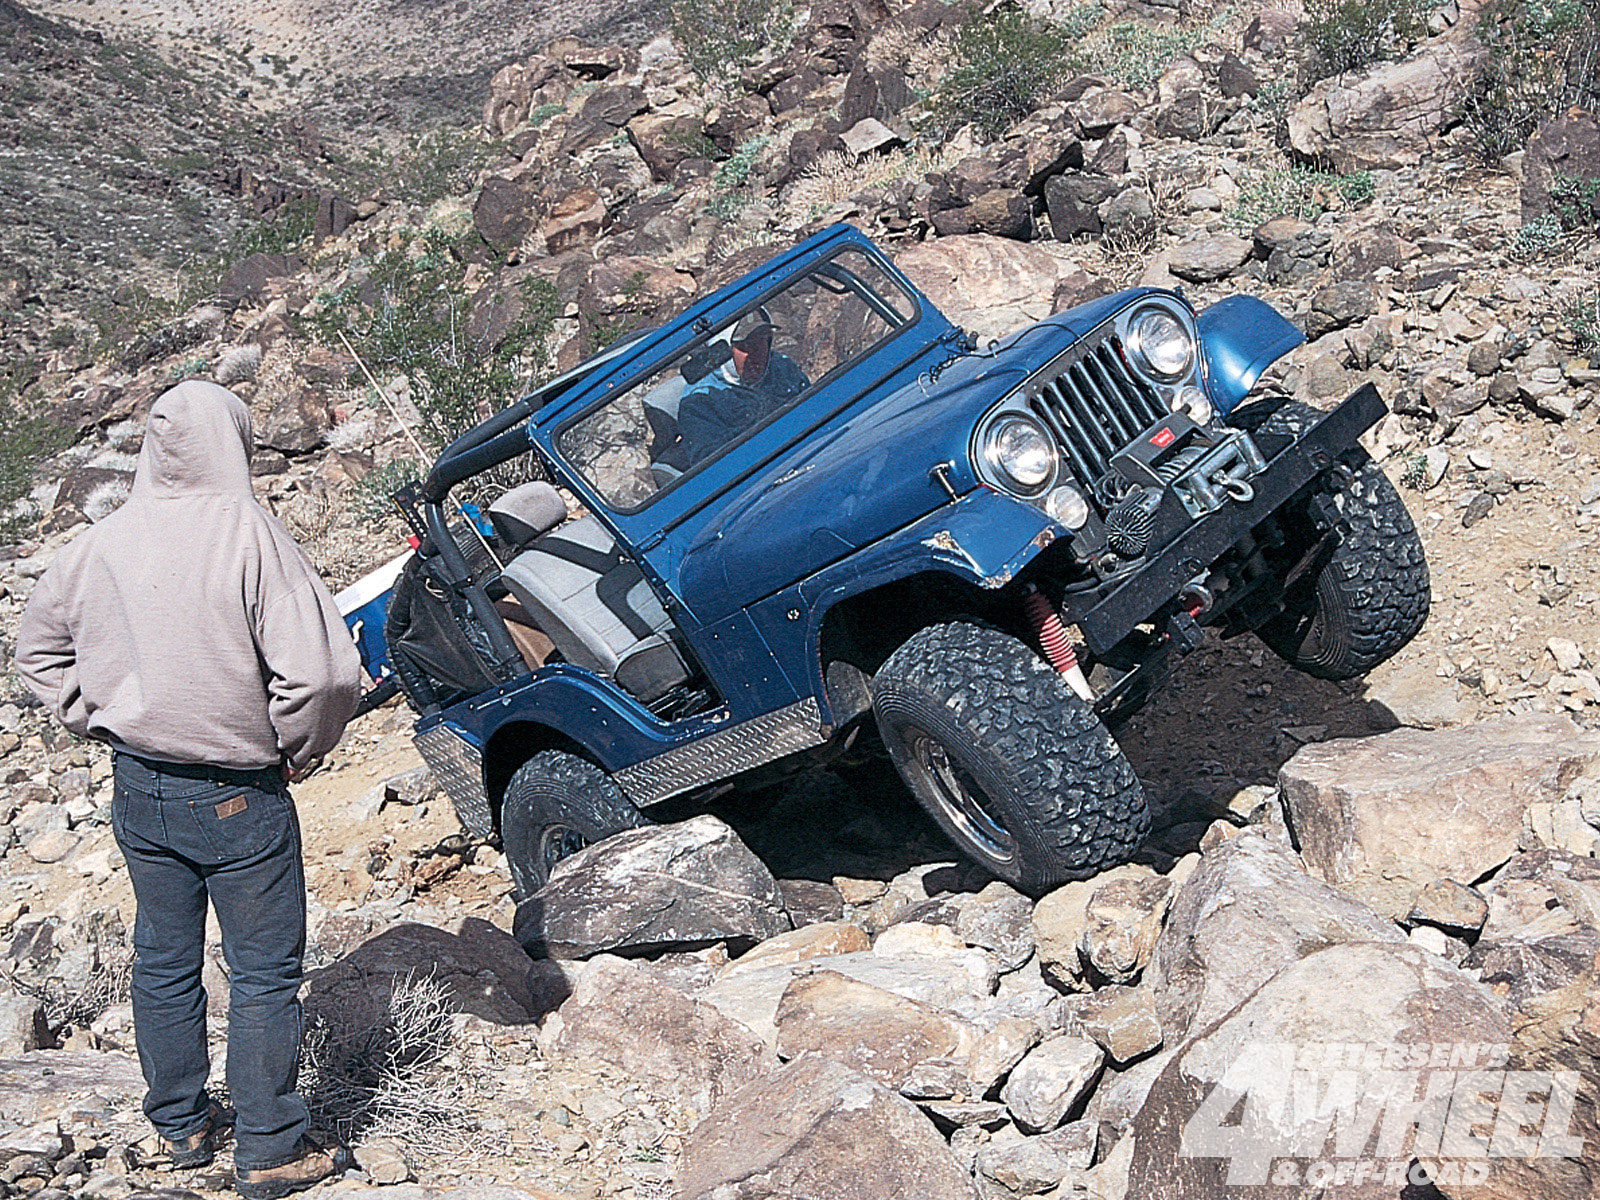 131 9802 13 o+131 9802 fun in the desert+jeep cj blue side shot